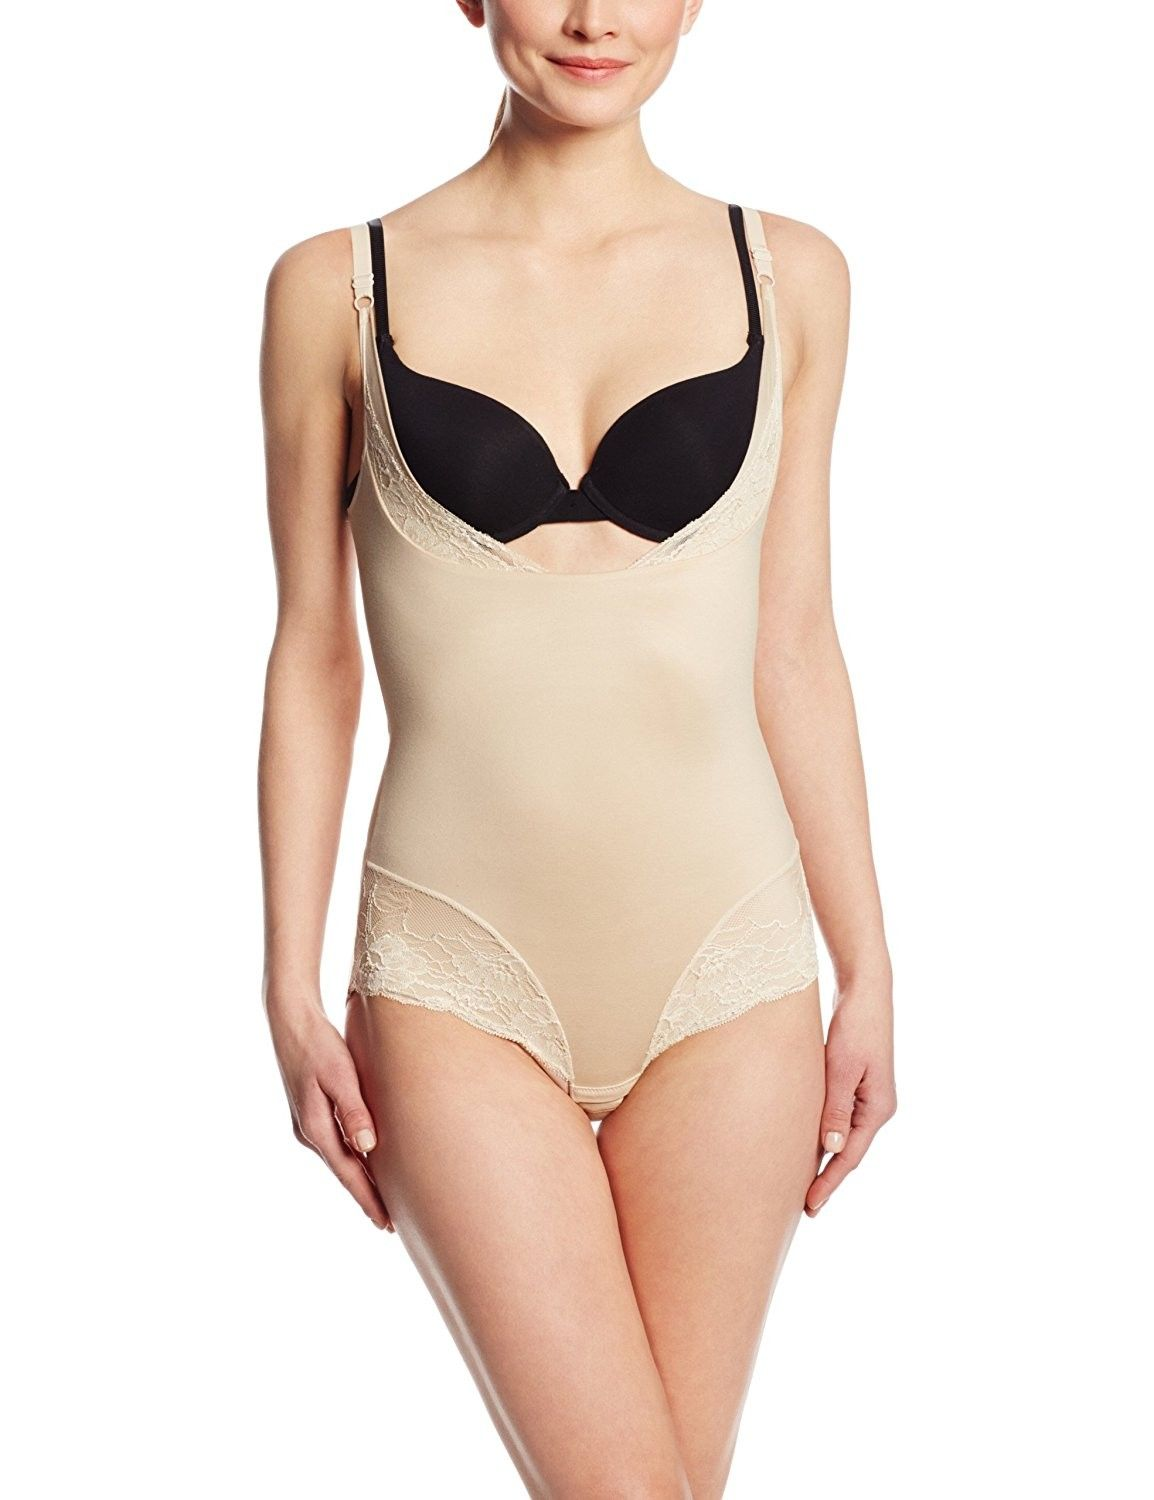 c0f78ff83b4af Maidenform Women s Shapewear Comfort Devotion Wear Your Own Bra Romper -  Latte Lift - CT11I2T8EU1